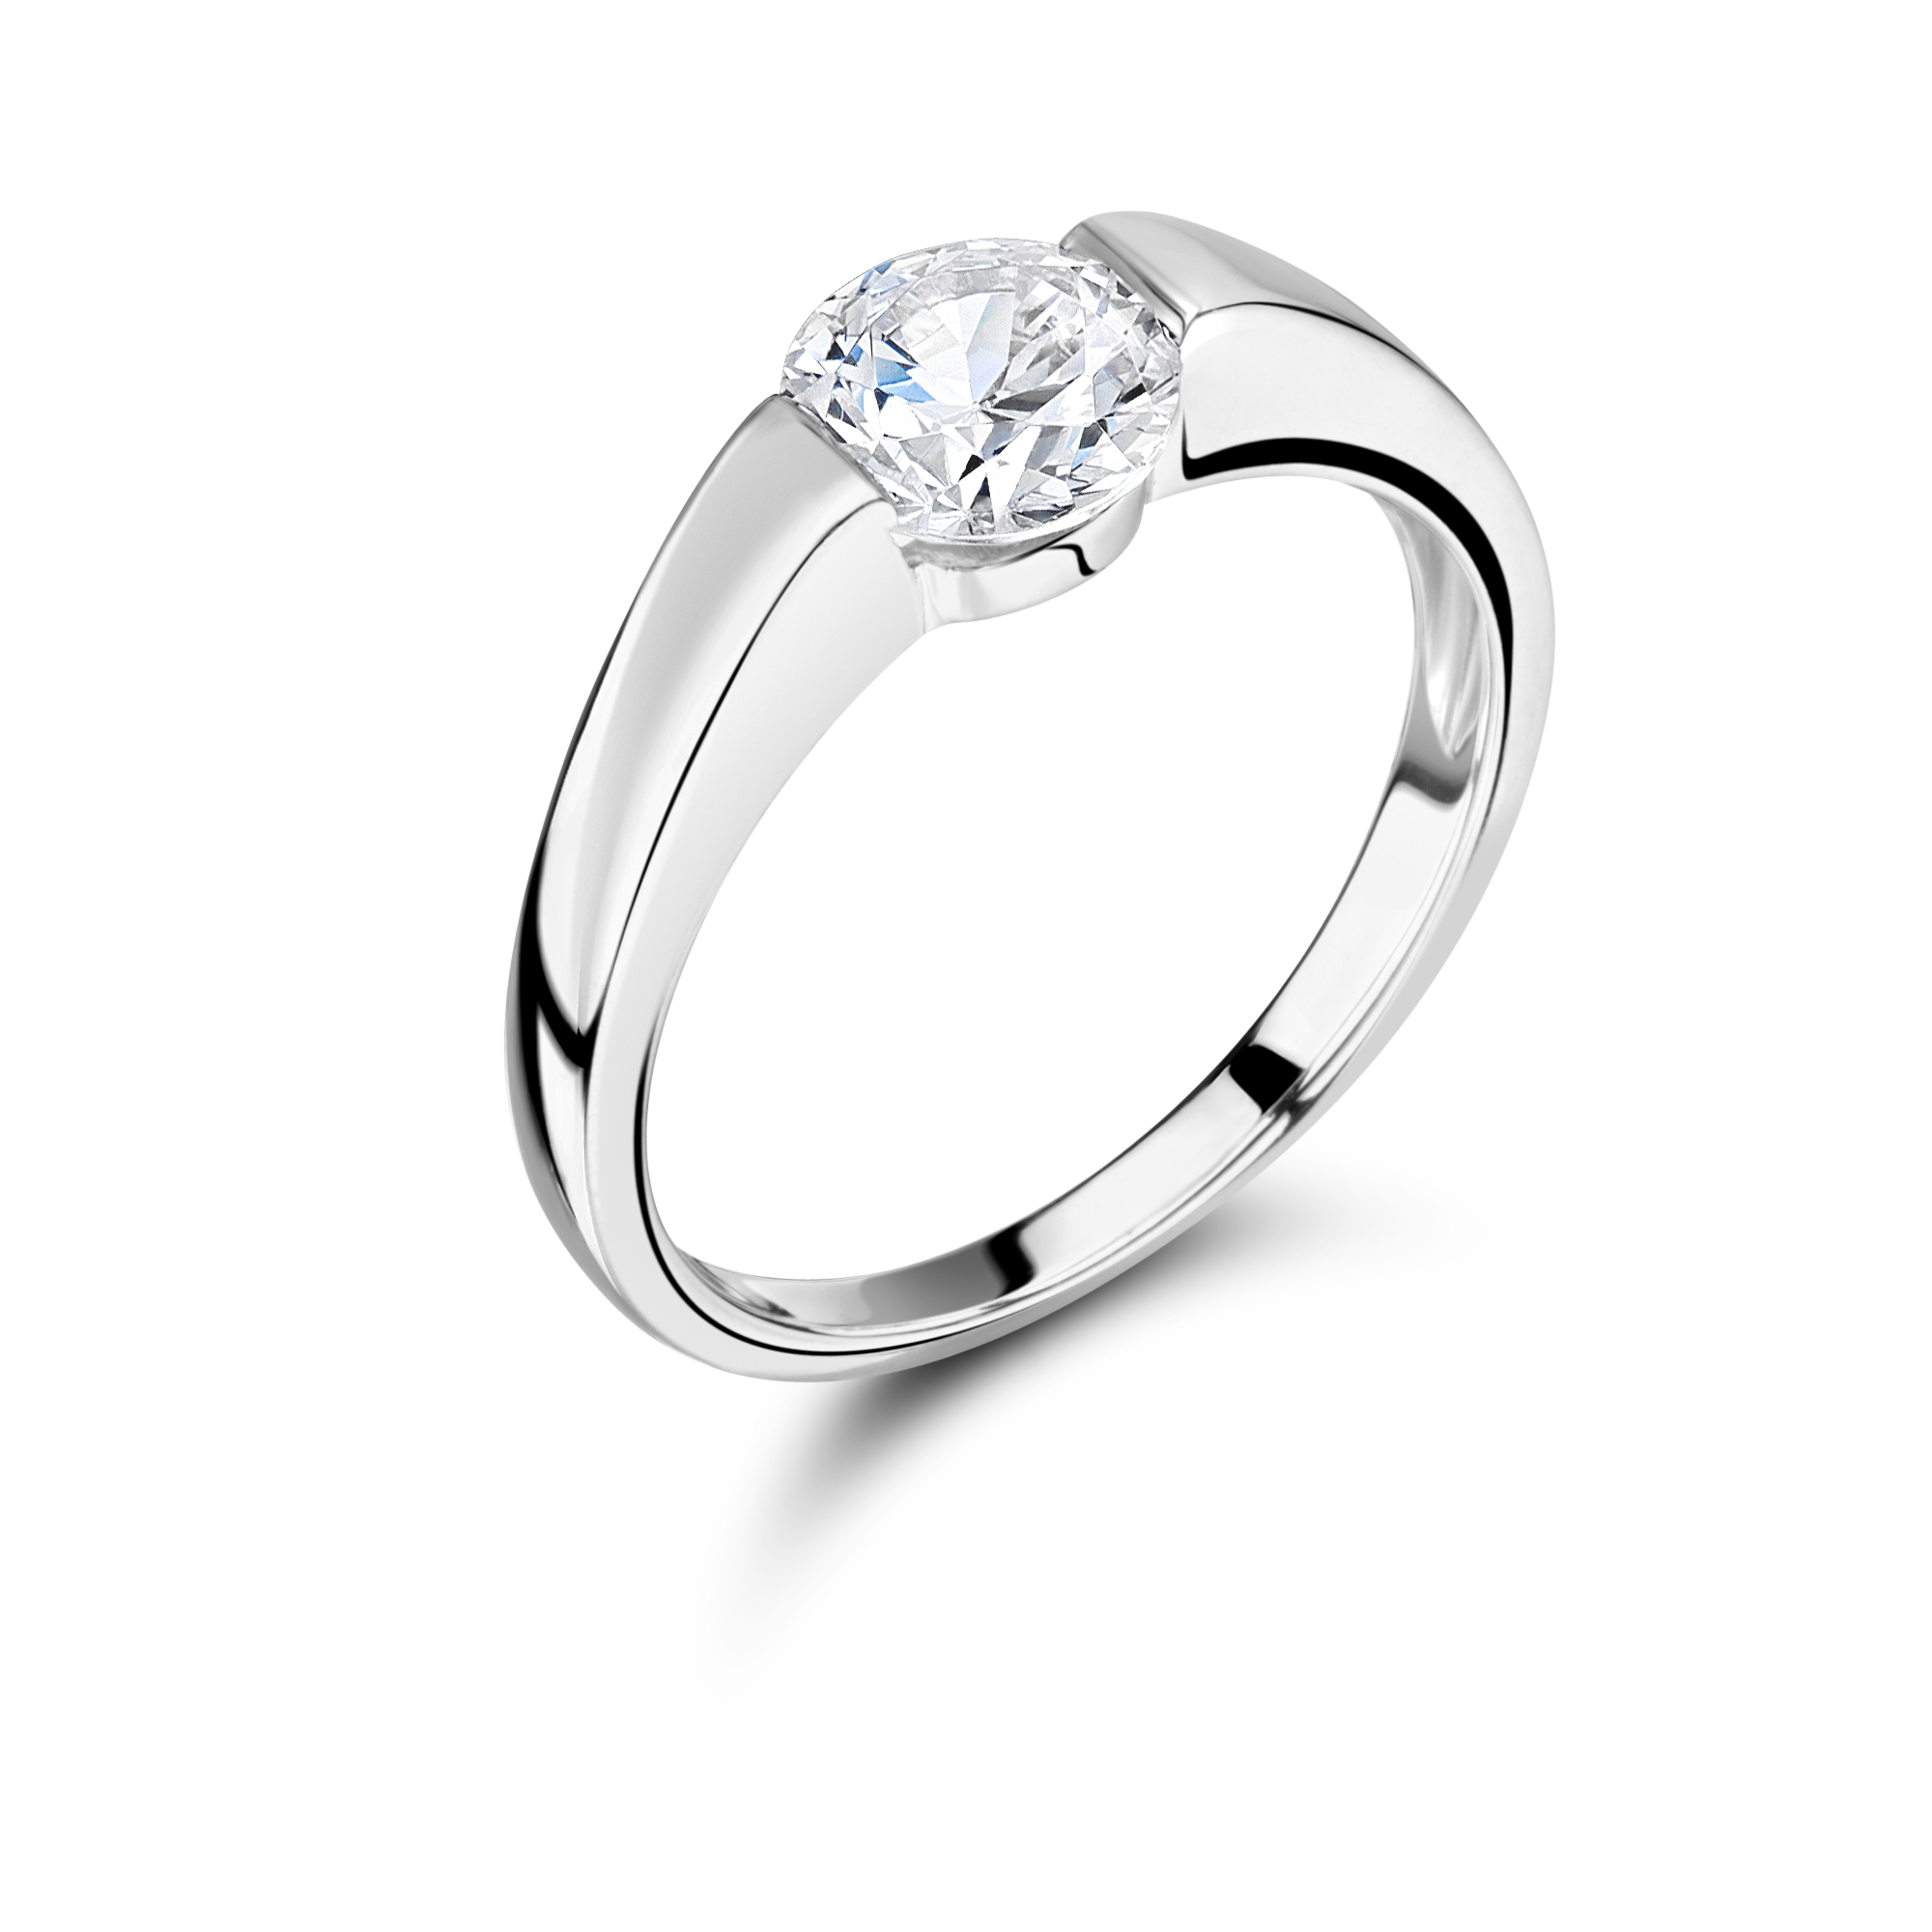 carat stone ring a round brilliant three cut wedding sku rings engagement diamond